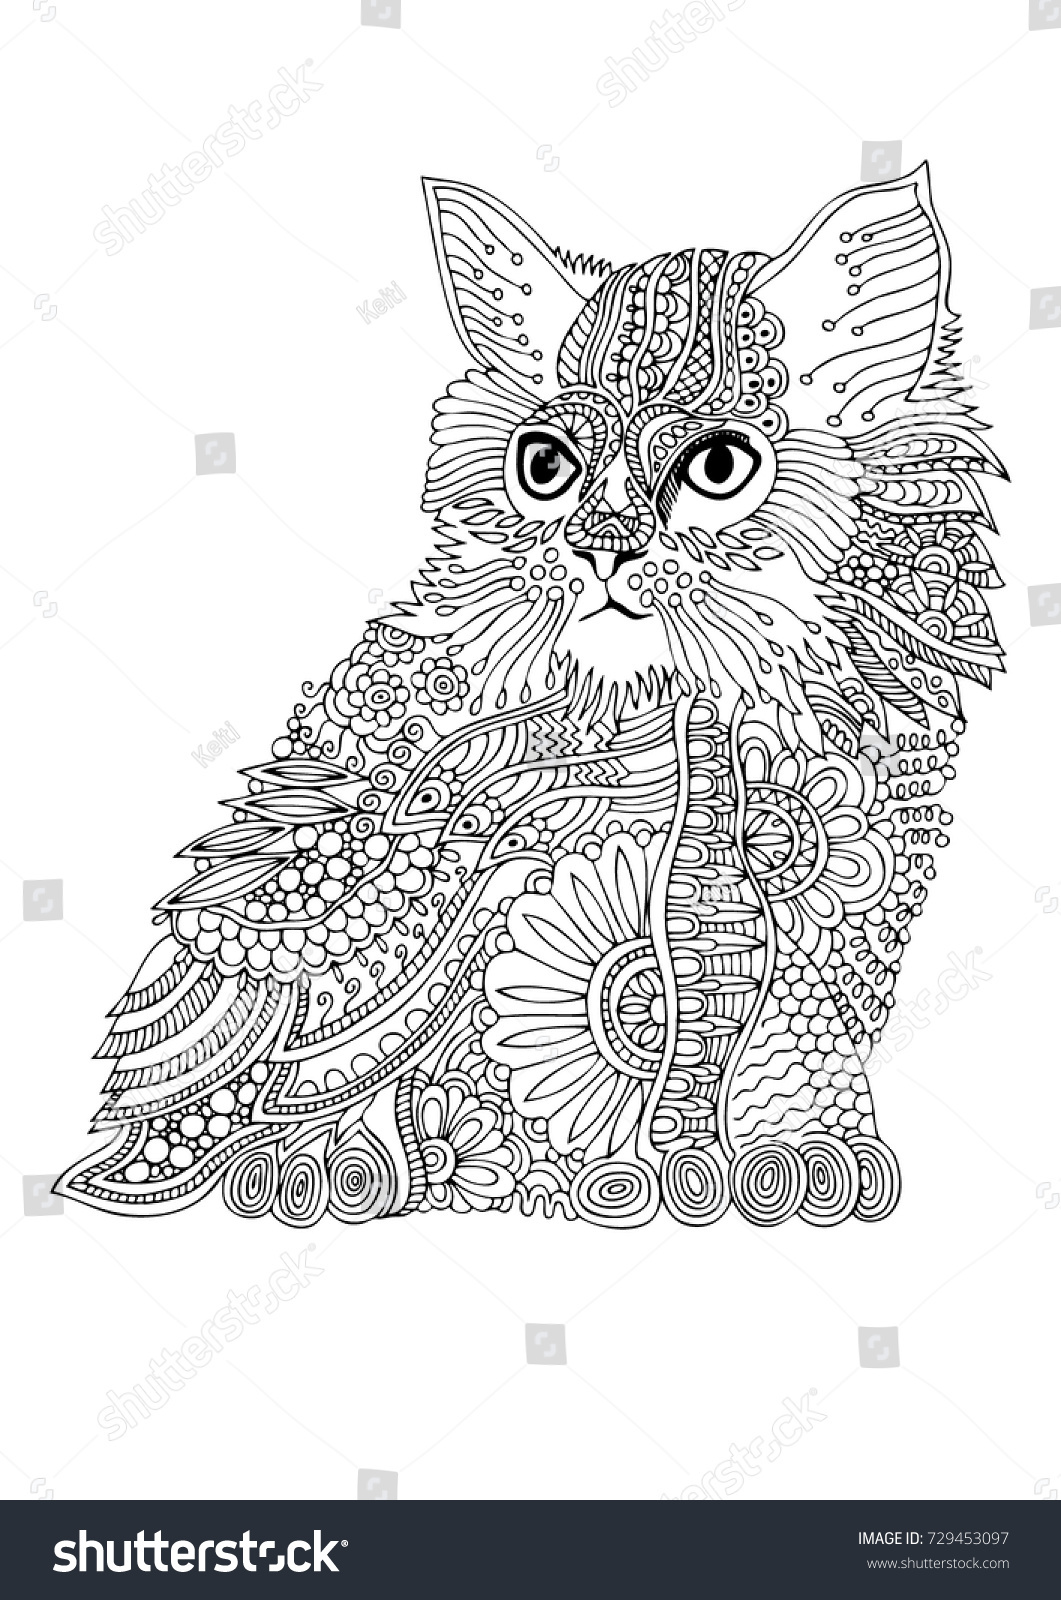 Zen cat coloring page - Hand Drawn Cat Sketch For Anti Stress Adult Coloring Book In Zen Tangle